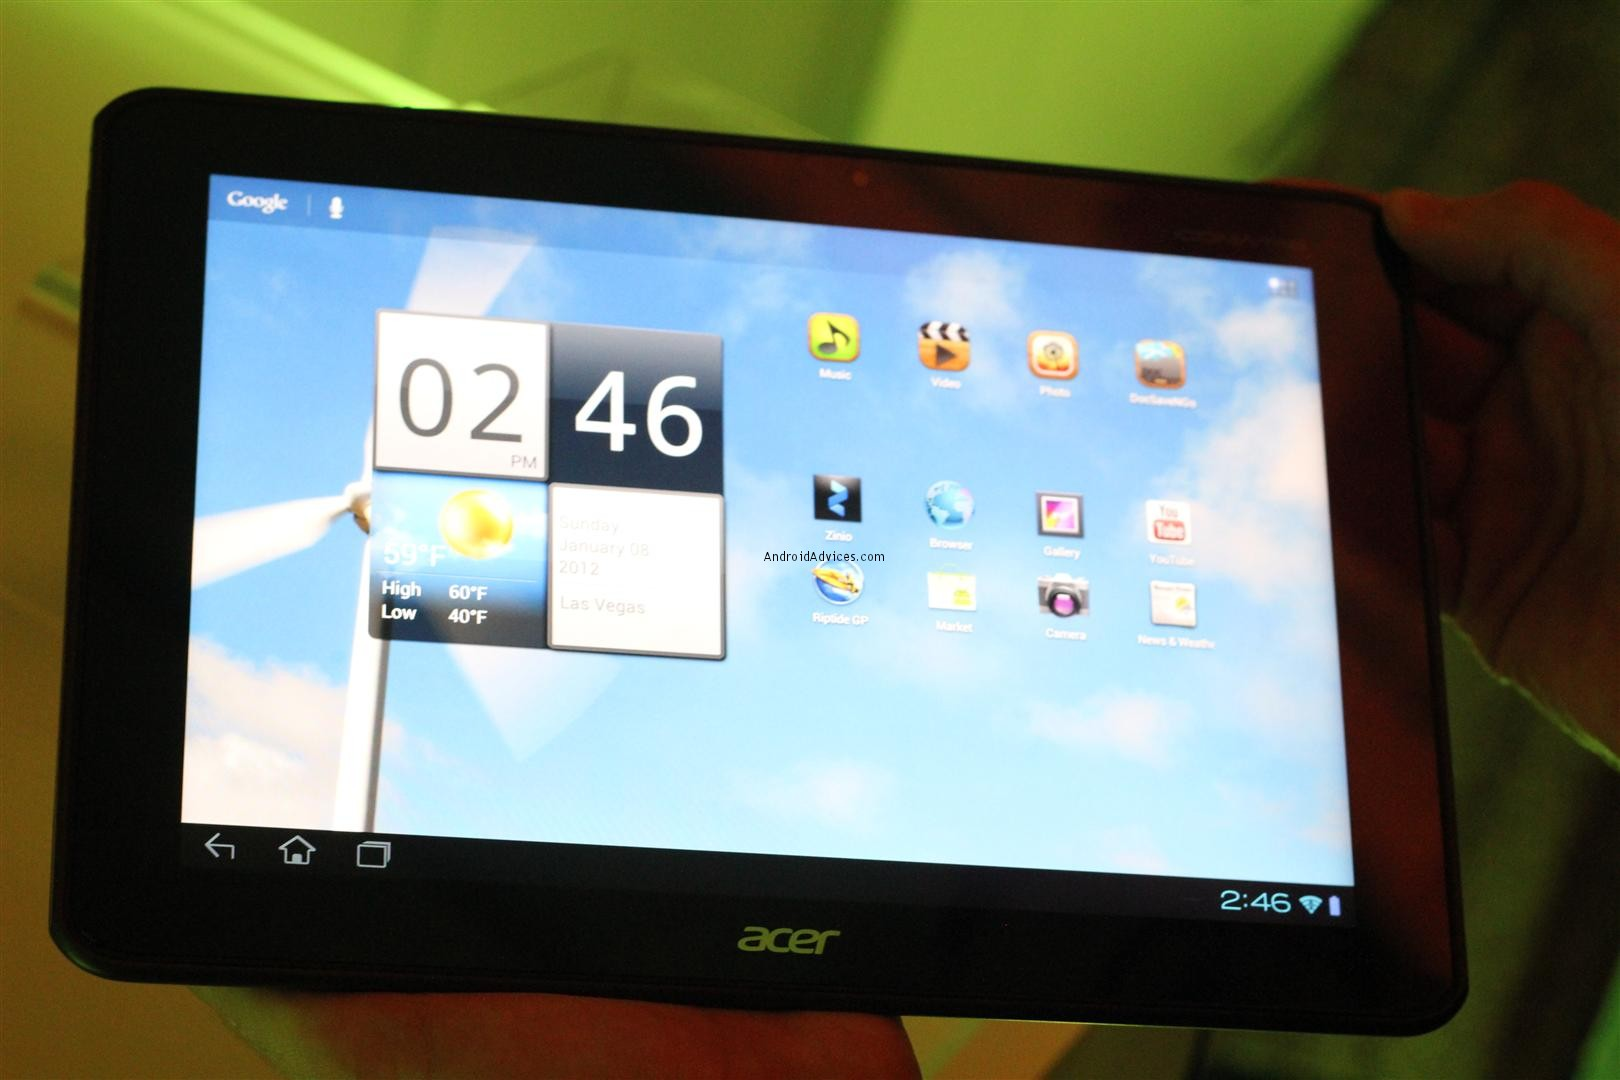 Acer A700 tablet